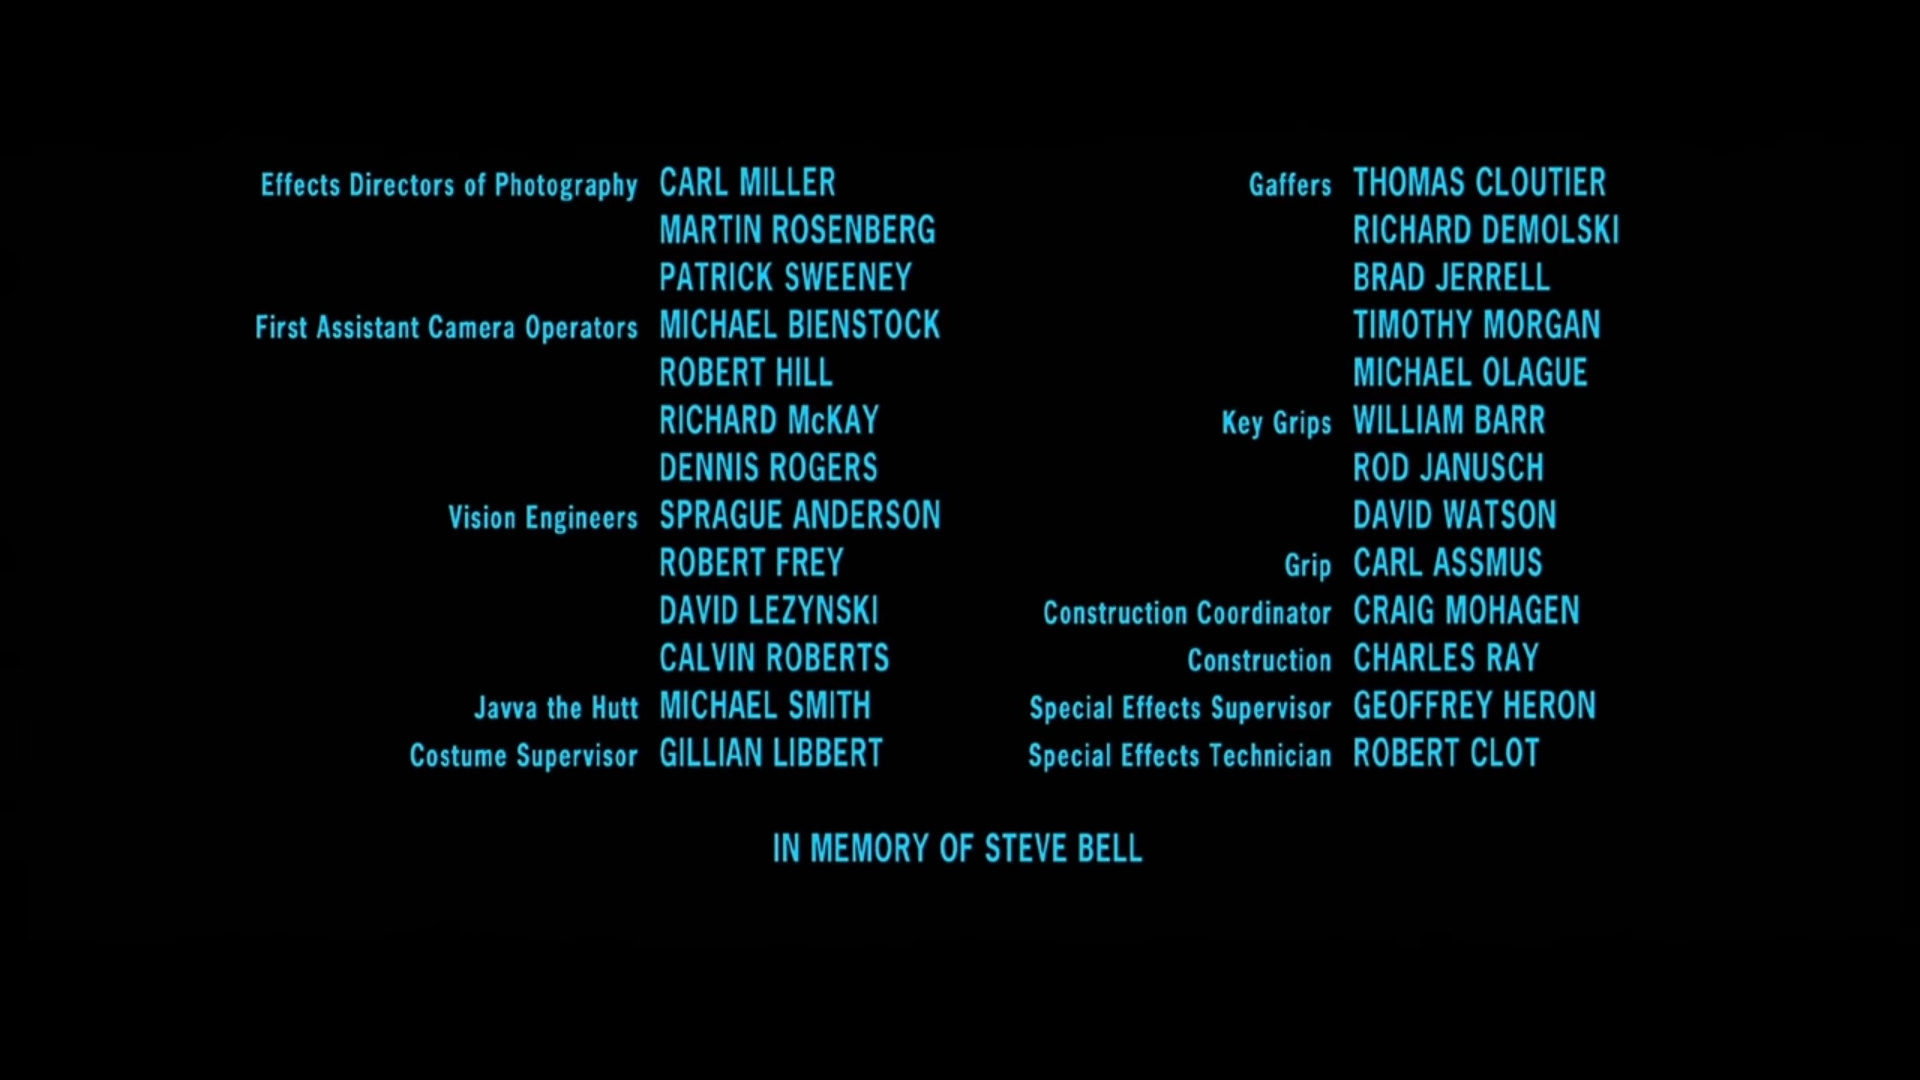 This is from the Attack of the Clones credits. This is probably the most brilliant way to credit the coffee gofer.